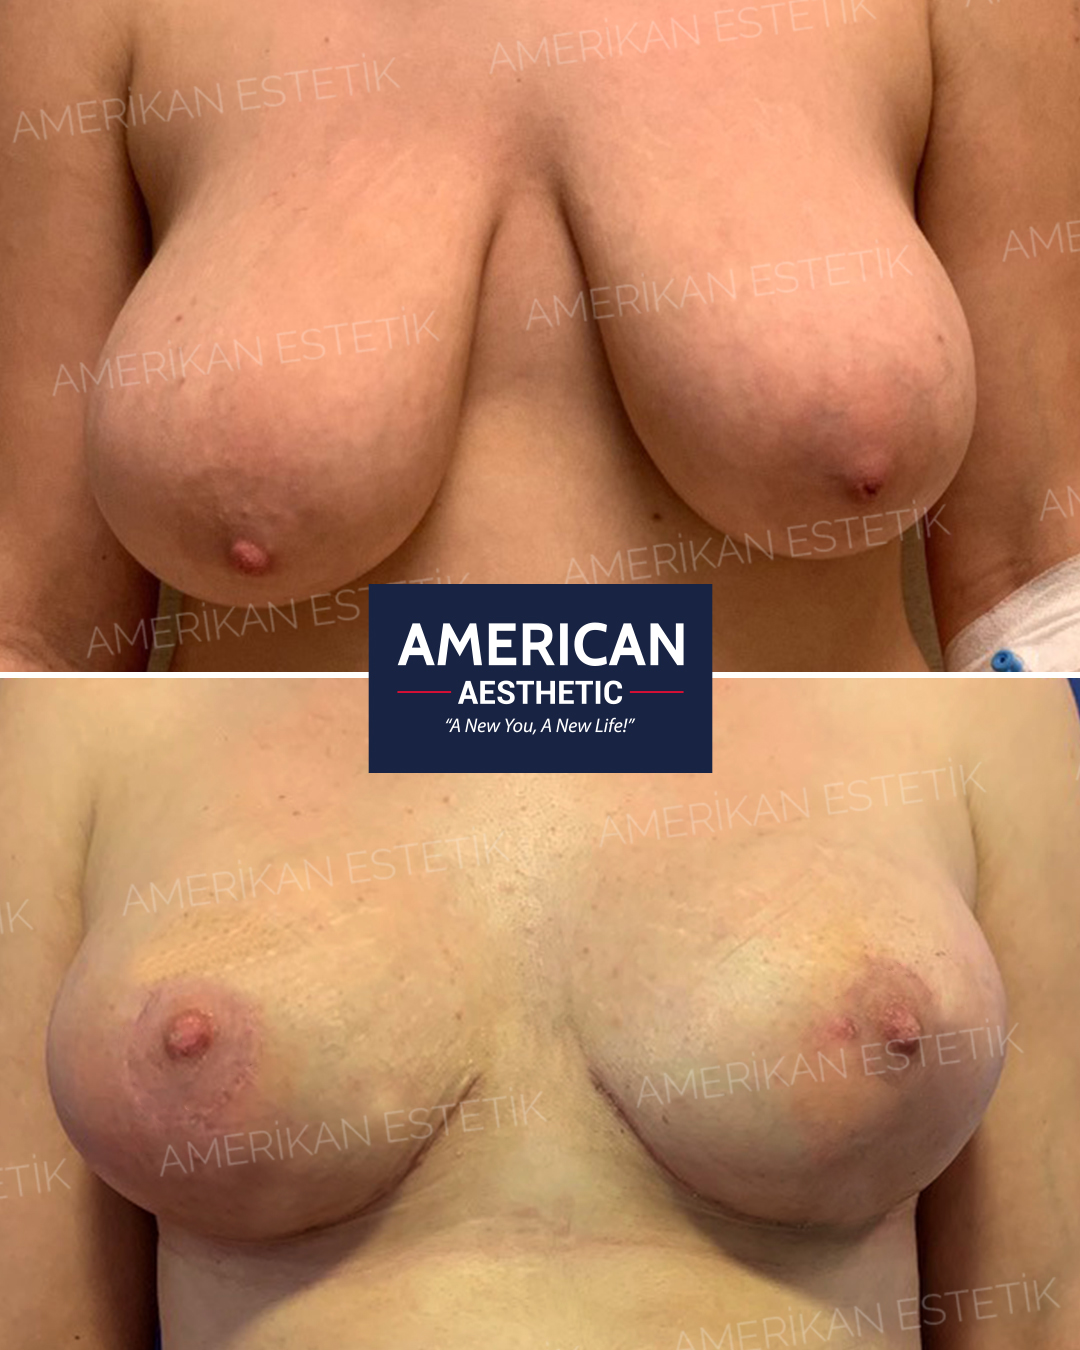 Breast Reduction Aesthetics Treatment